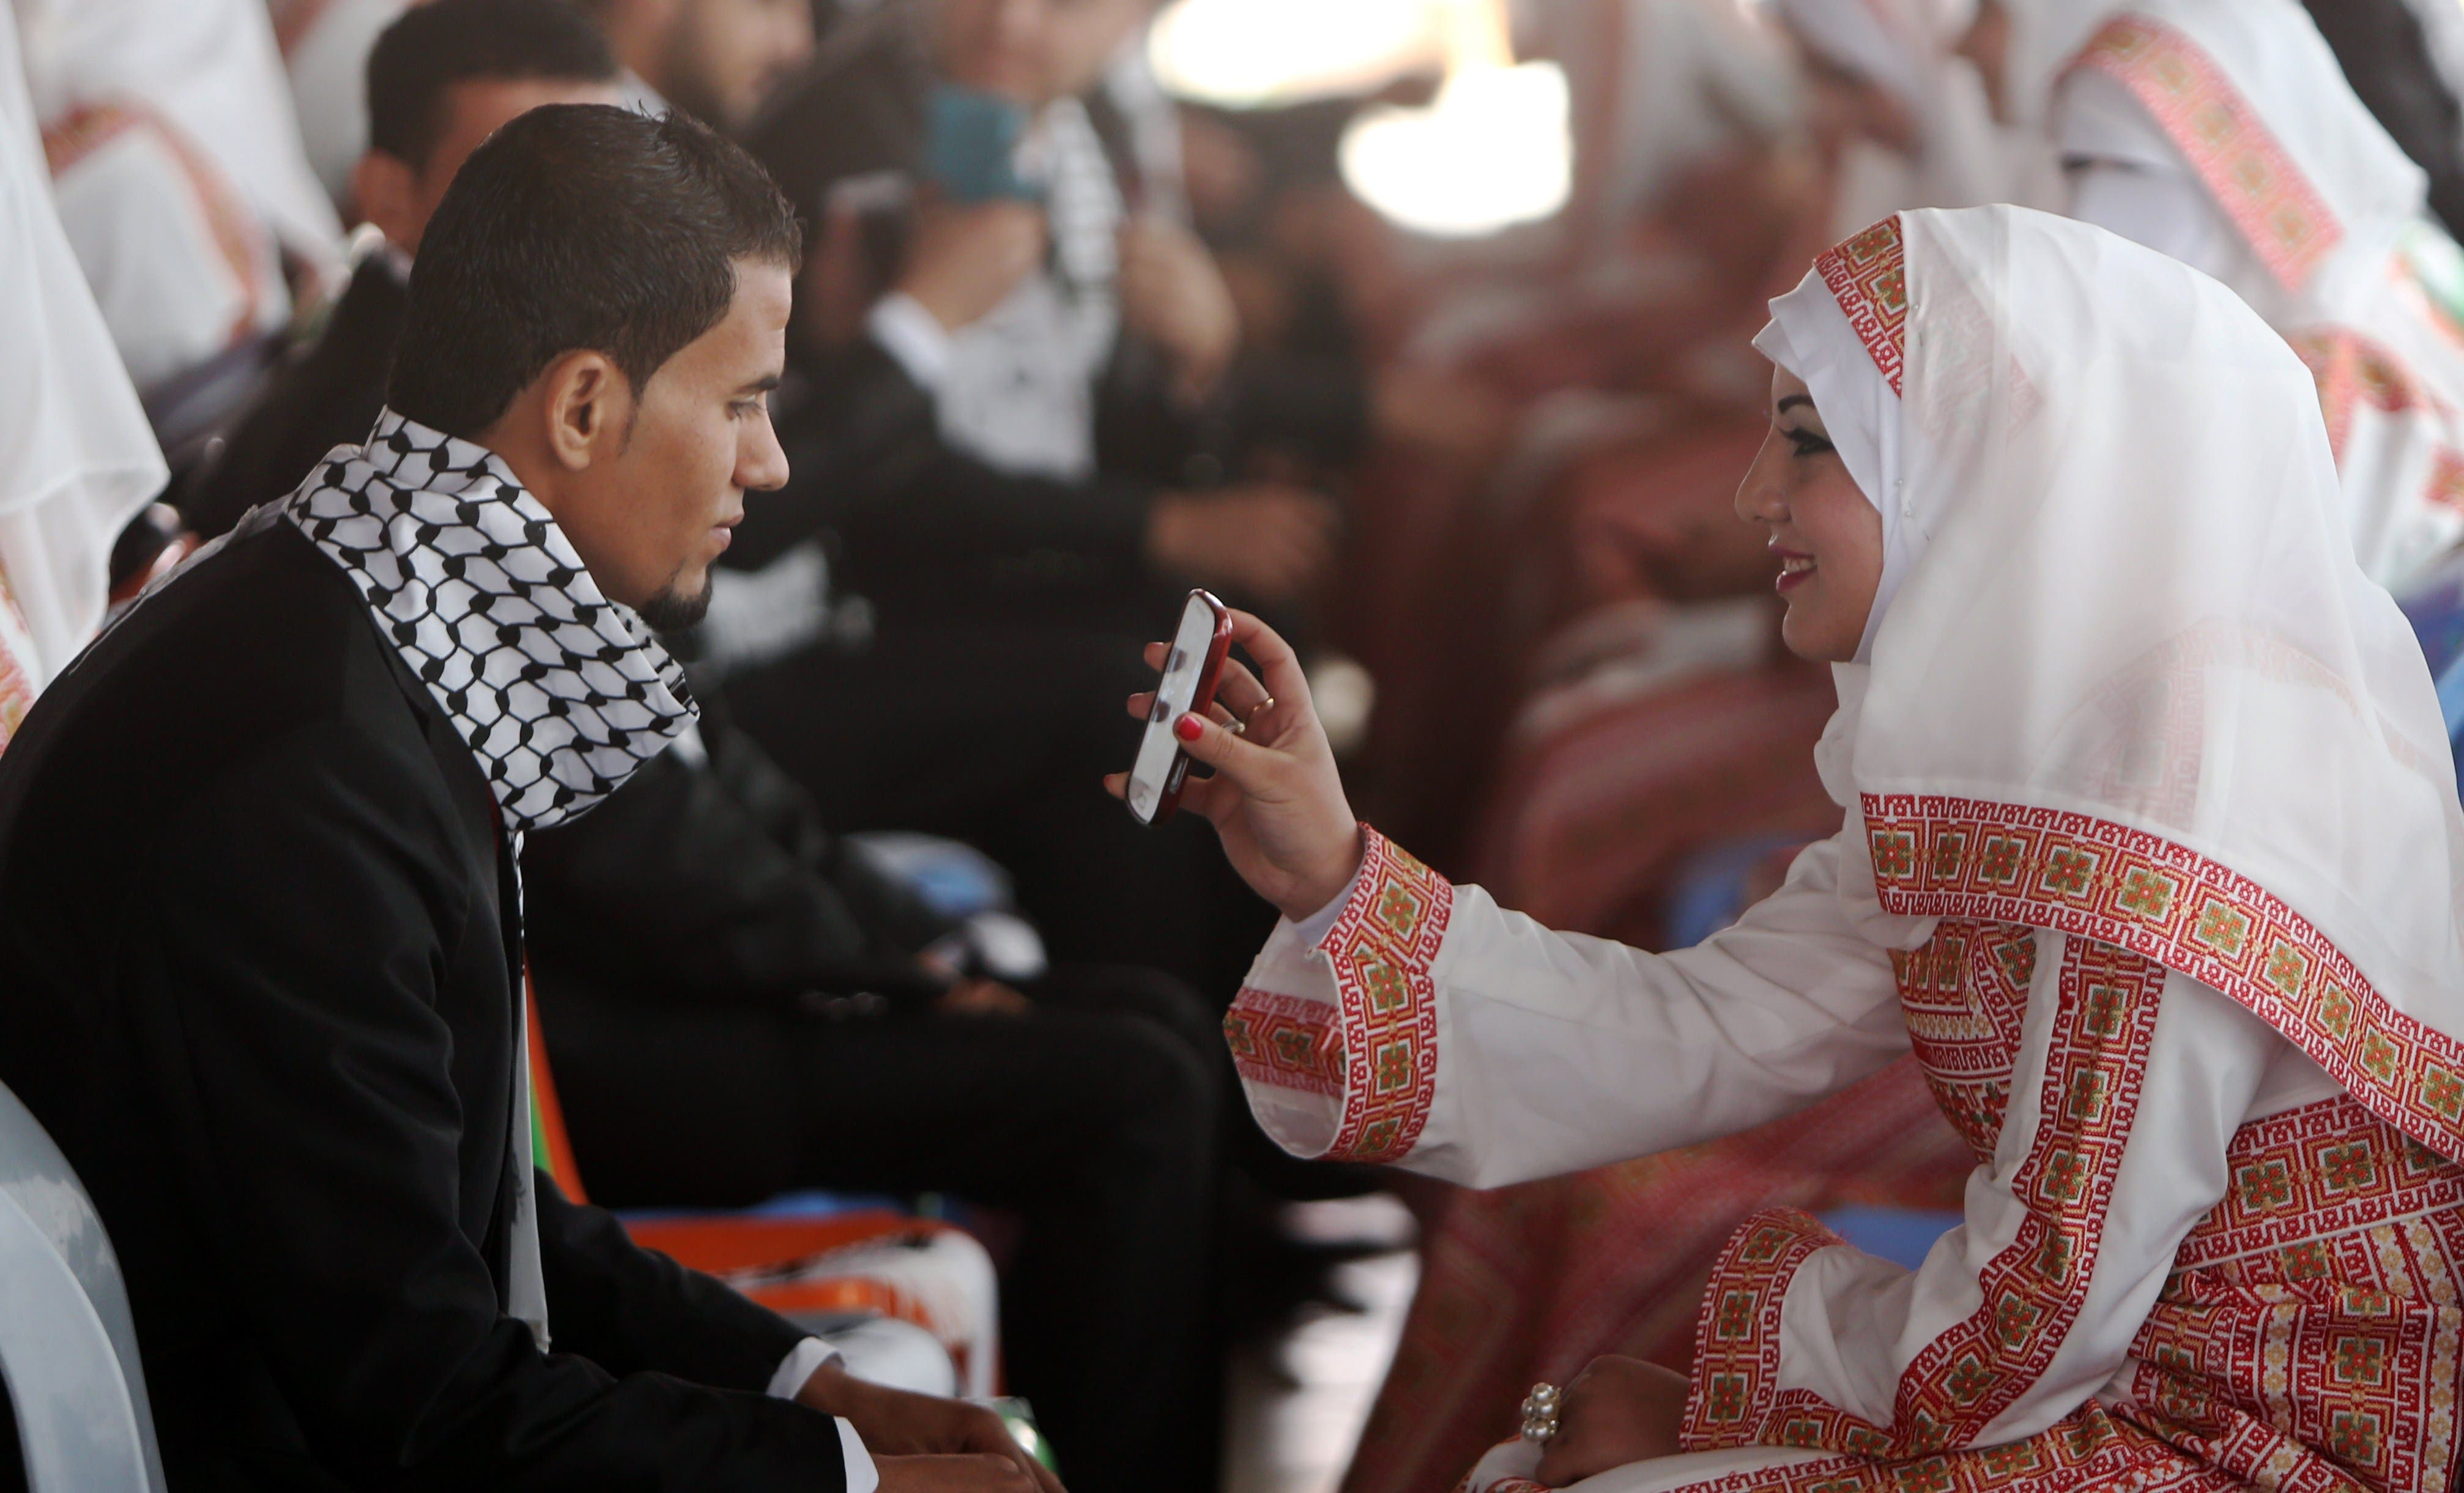 A Palestinian bride shows a phone-screen to her groom during a mass wedding ceremony in Gaza City, on April 11, 2015. (AFP)